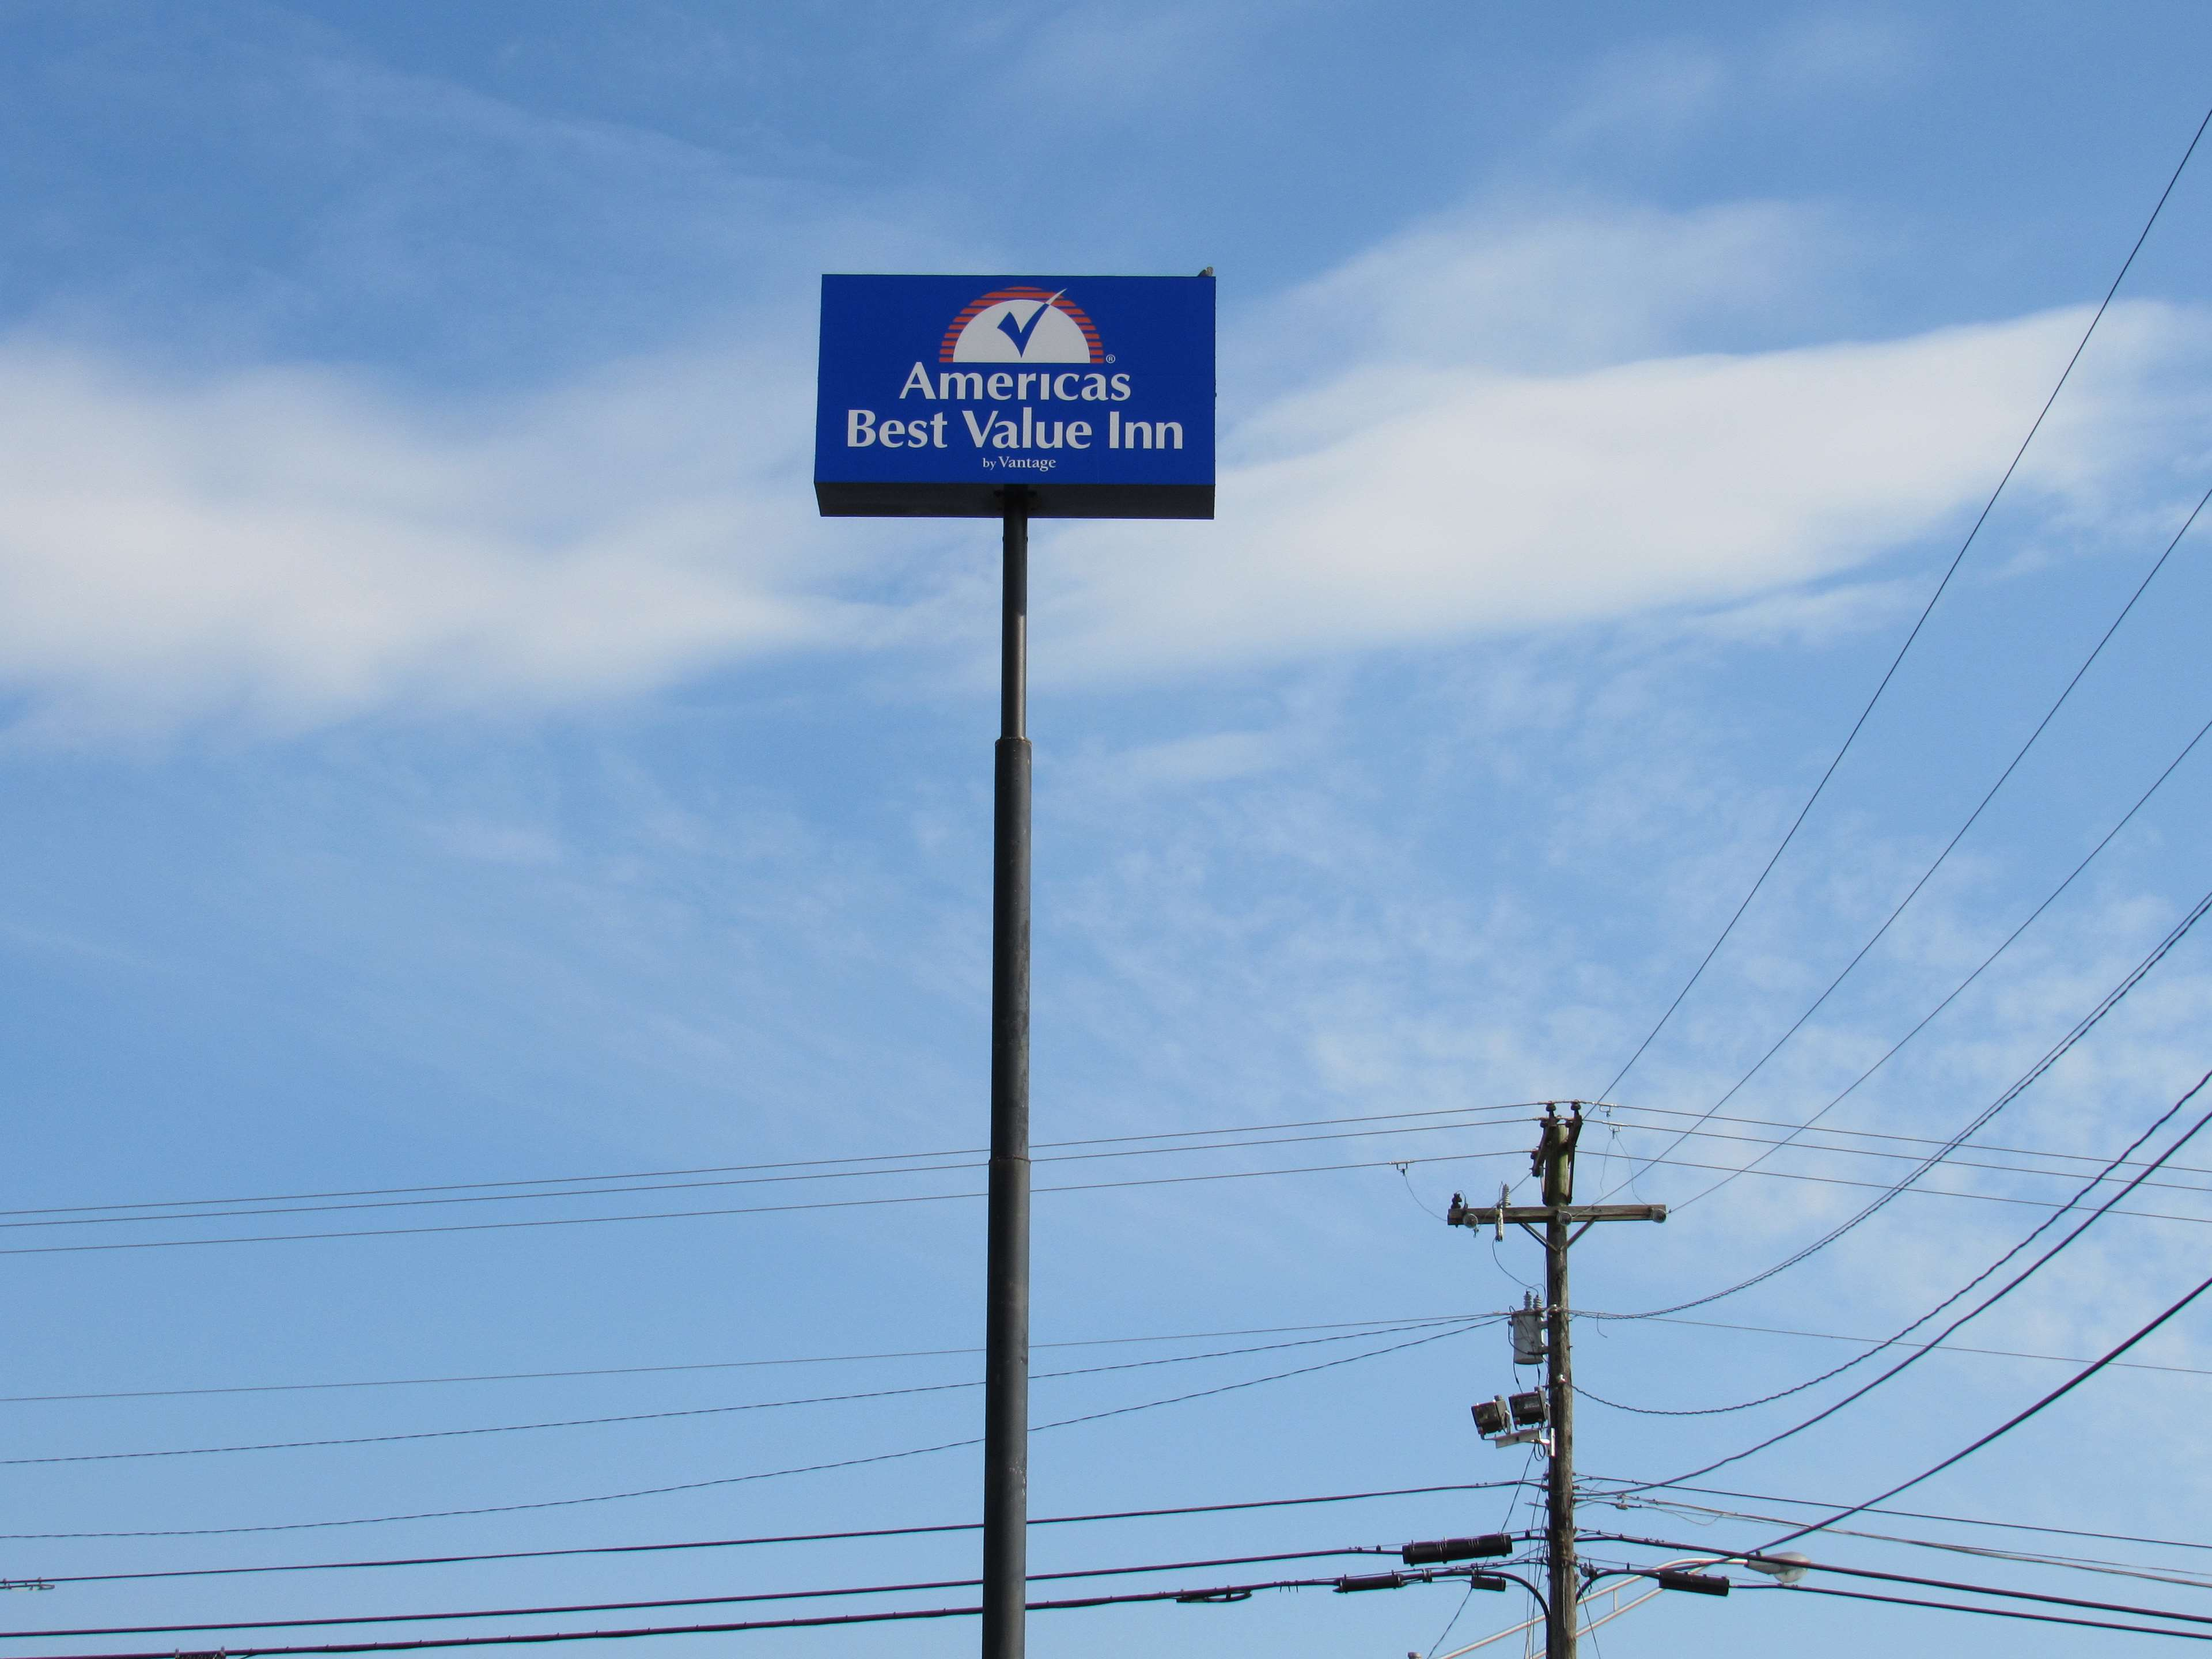 Americas best value inn somerset coupons near me in for Americas best coupons